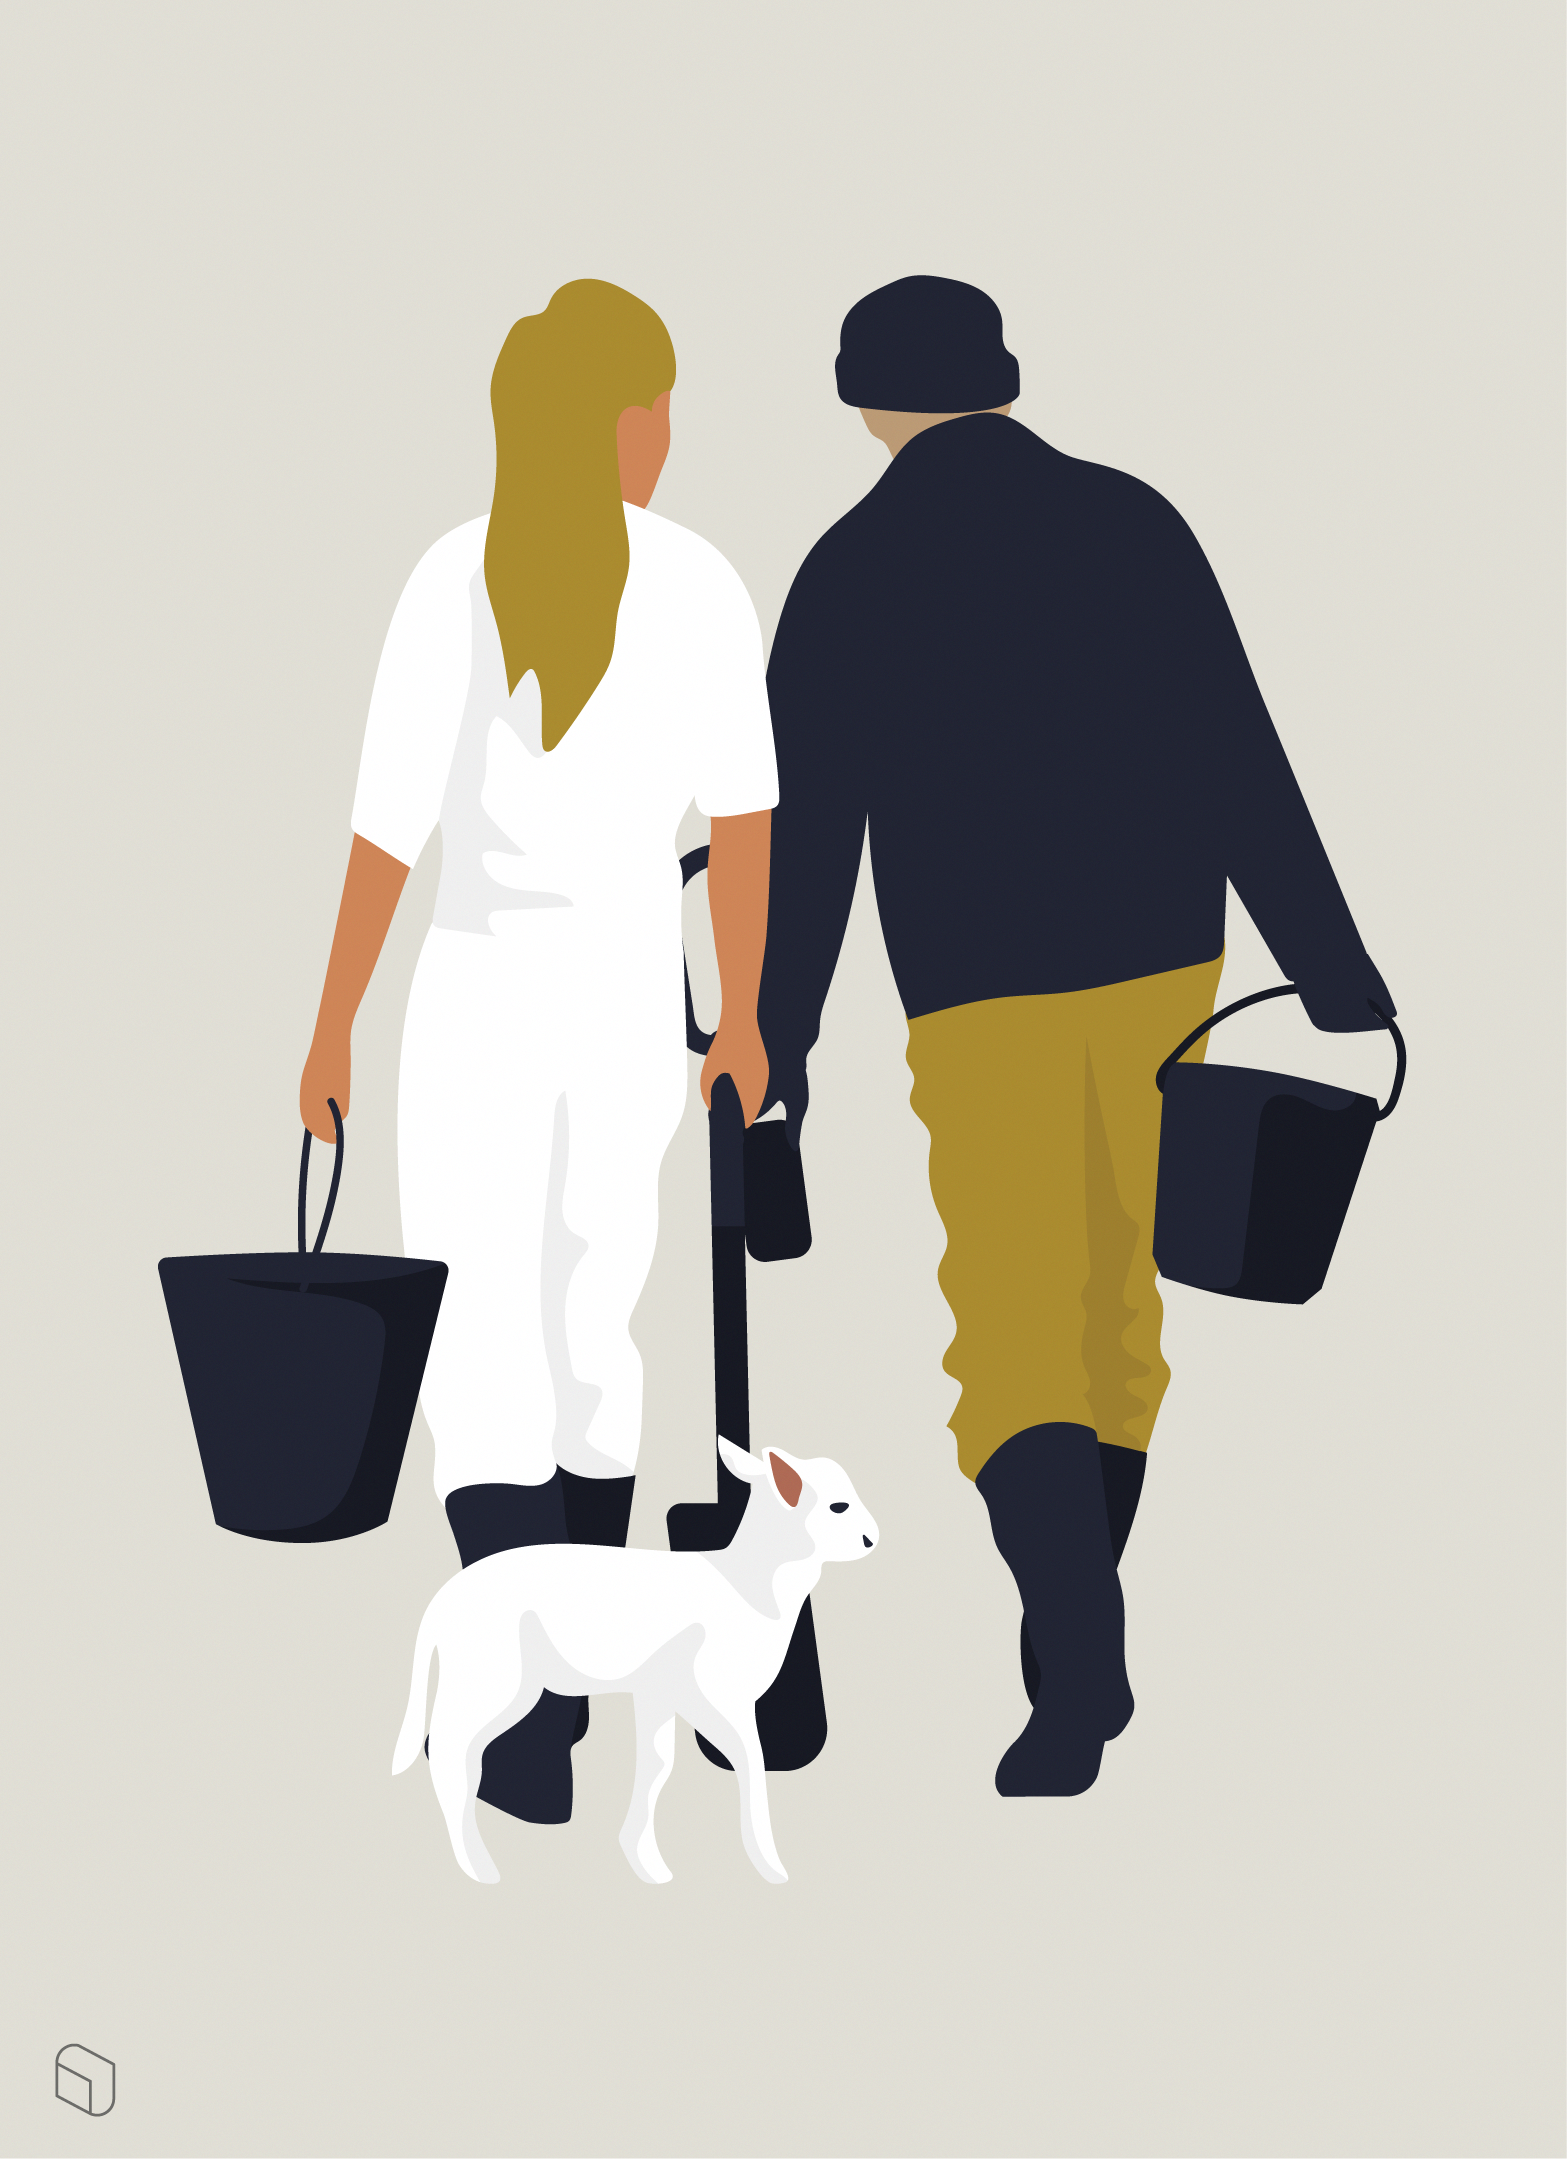 Photoshoparchitecture People Illustration People Cutout Silhouette People